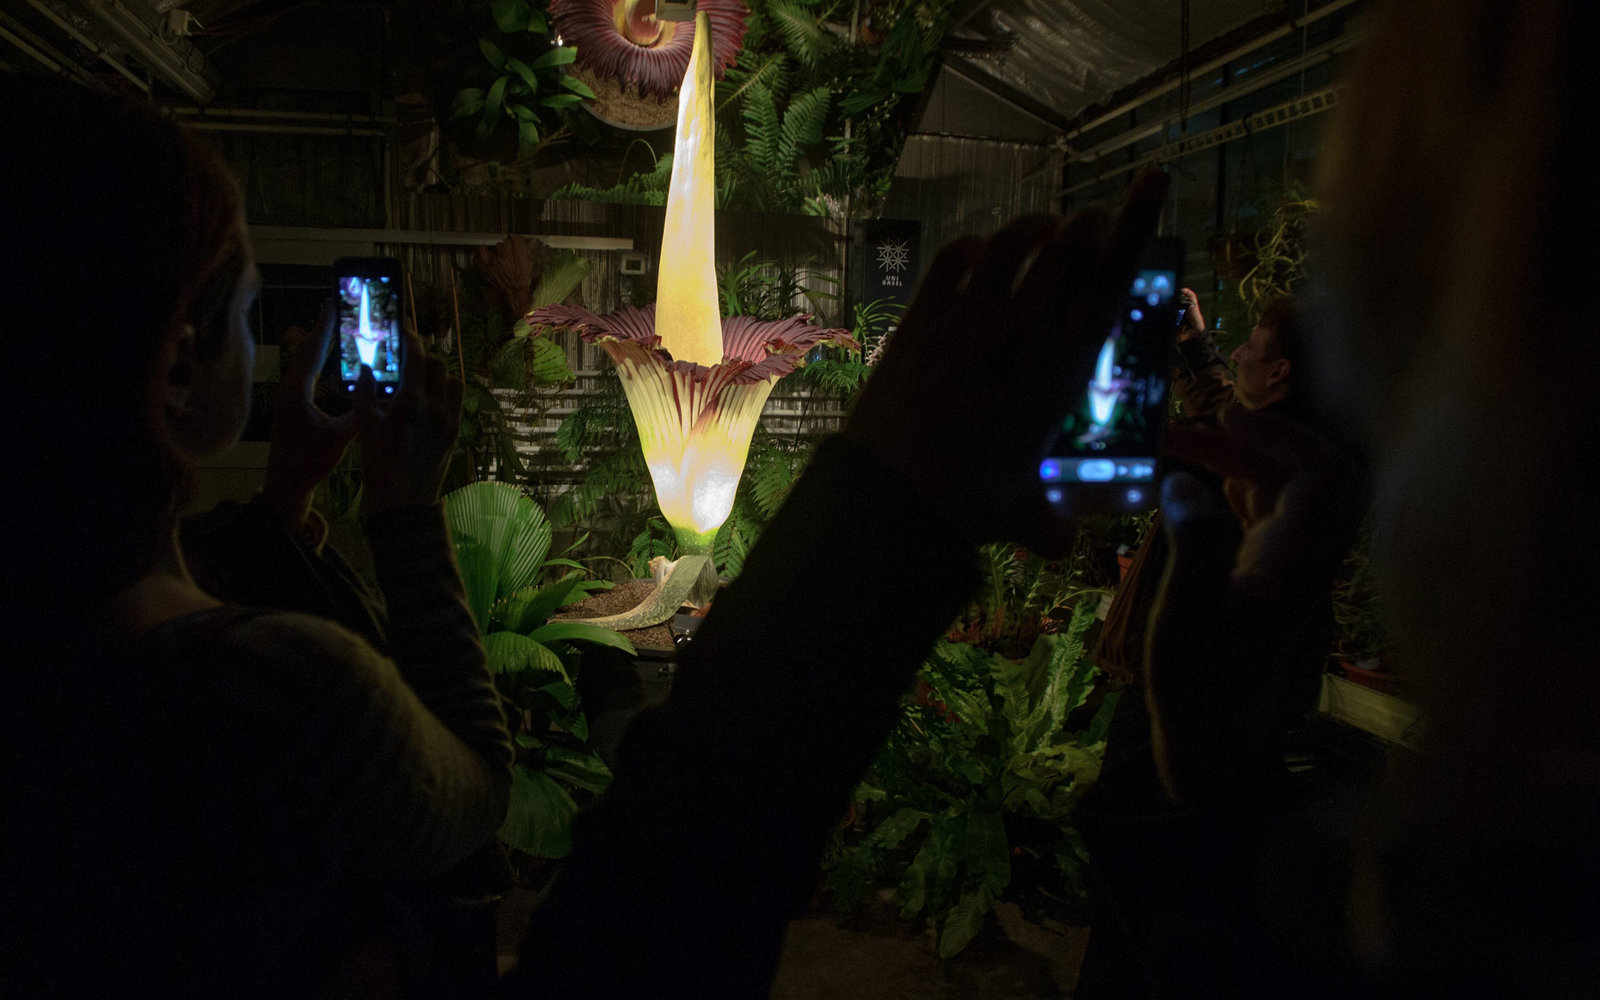 In Texas a Giant Smelly Corpse Flower Named Morticia Bloomed Wat